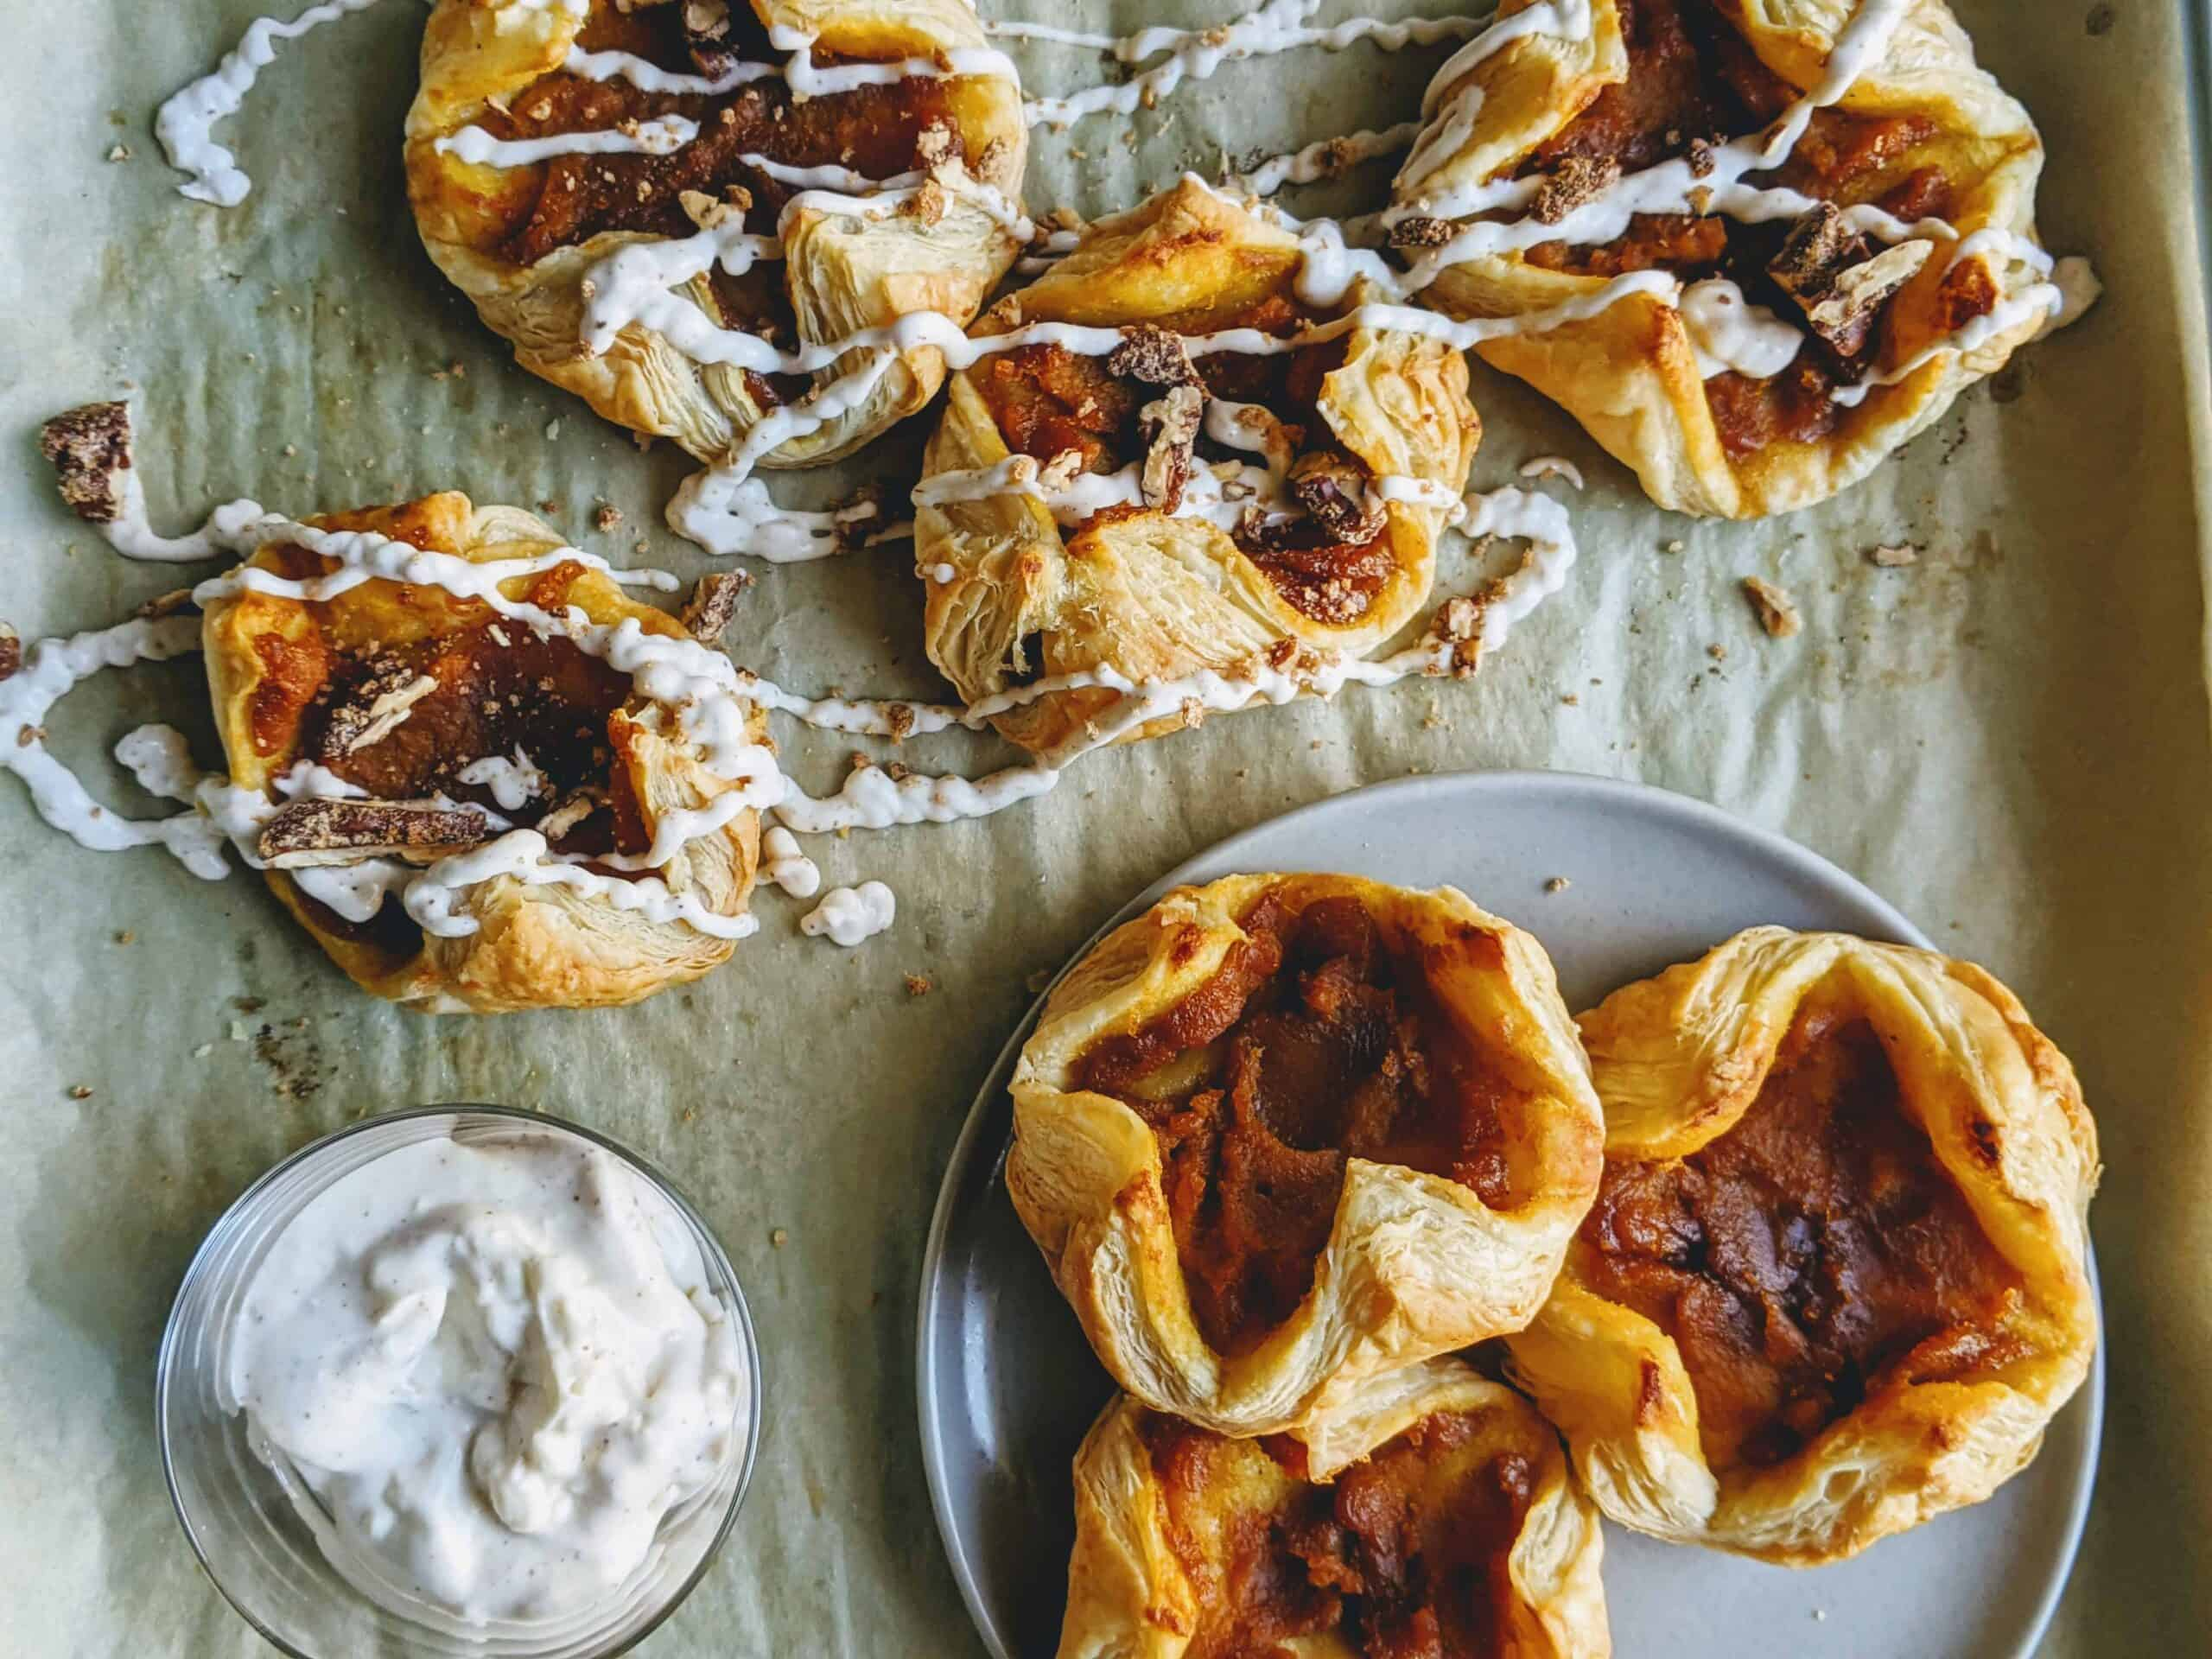 pumpkin bites with cream cheese dip and candied pecans